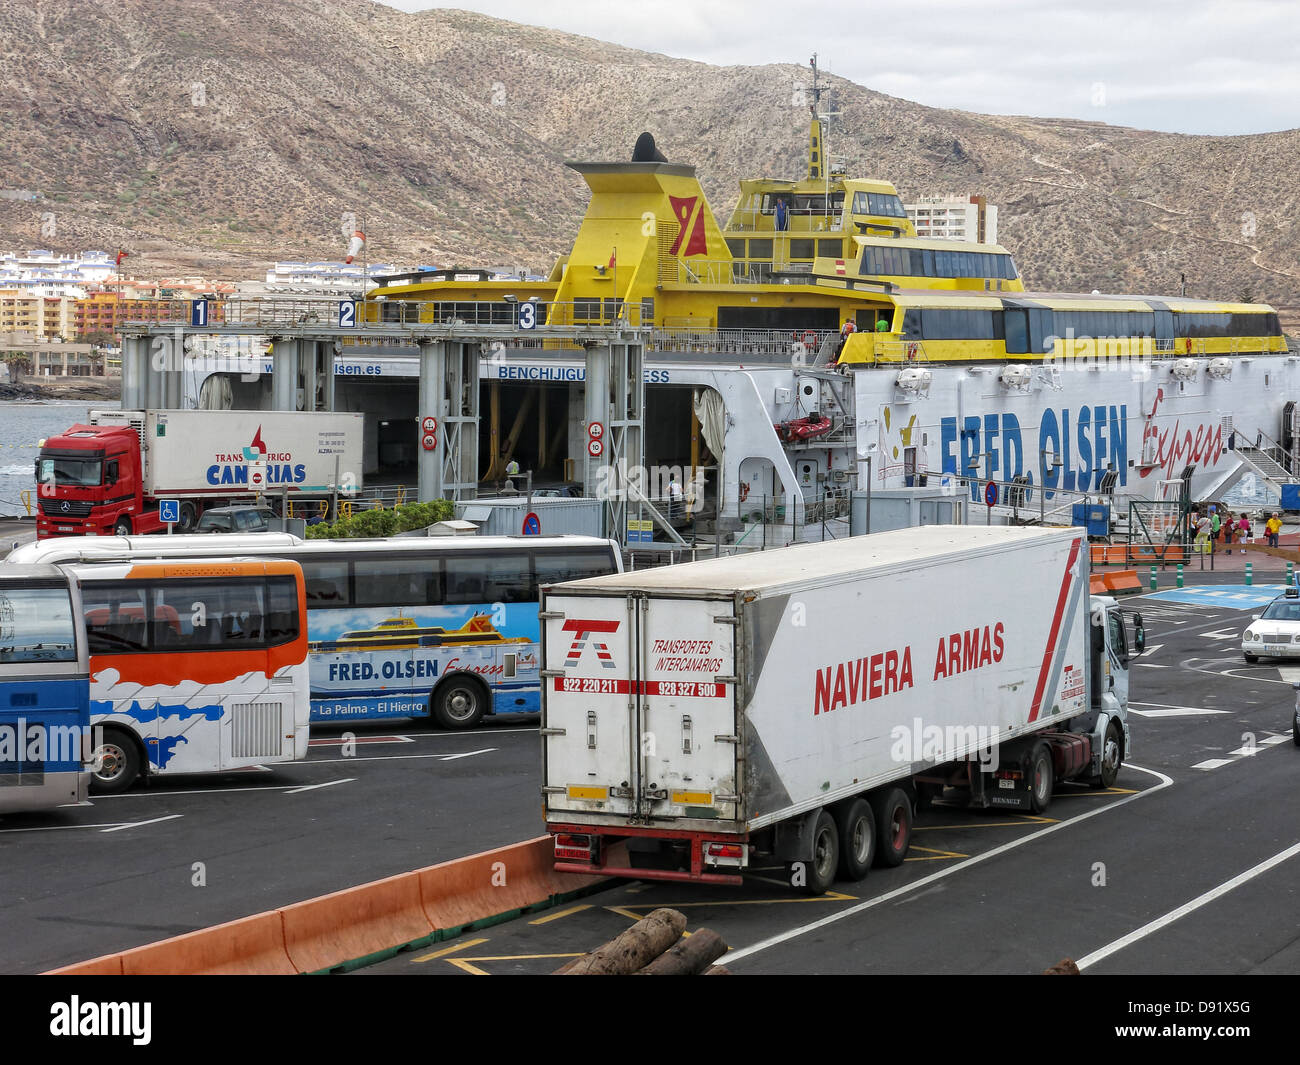 Fred Olsen Trimaran loading at Ferry port at Los Cristianos town, Southern Tenerife, Canary Islands Spain - Stock Image